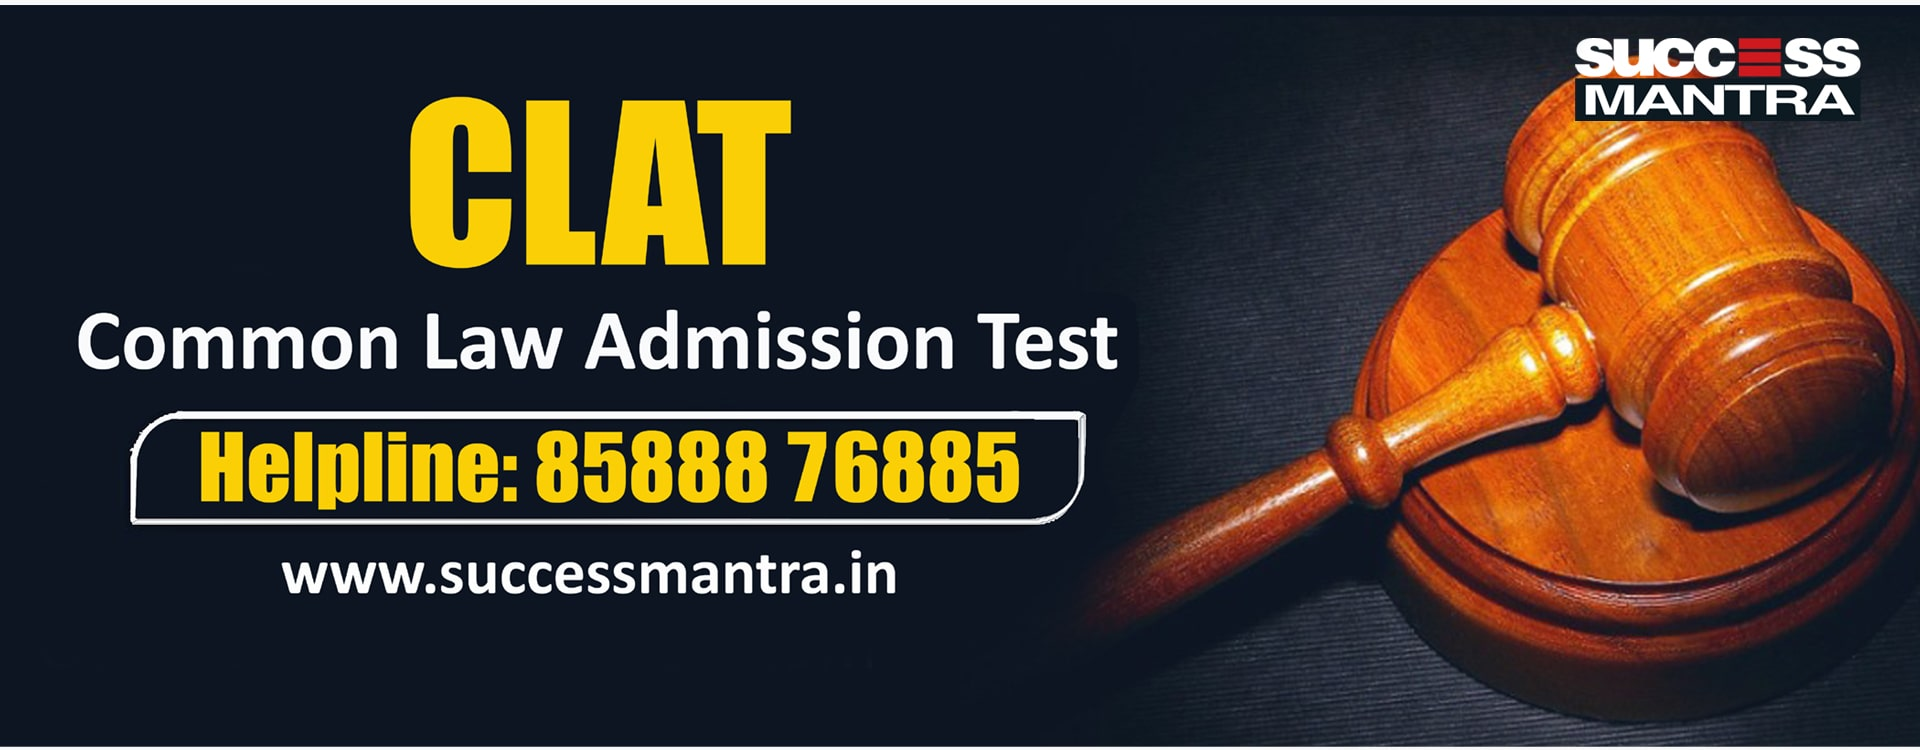 How to score 40+ marks in clat, ailet, dullb, success mantra, ballb, bballb